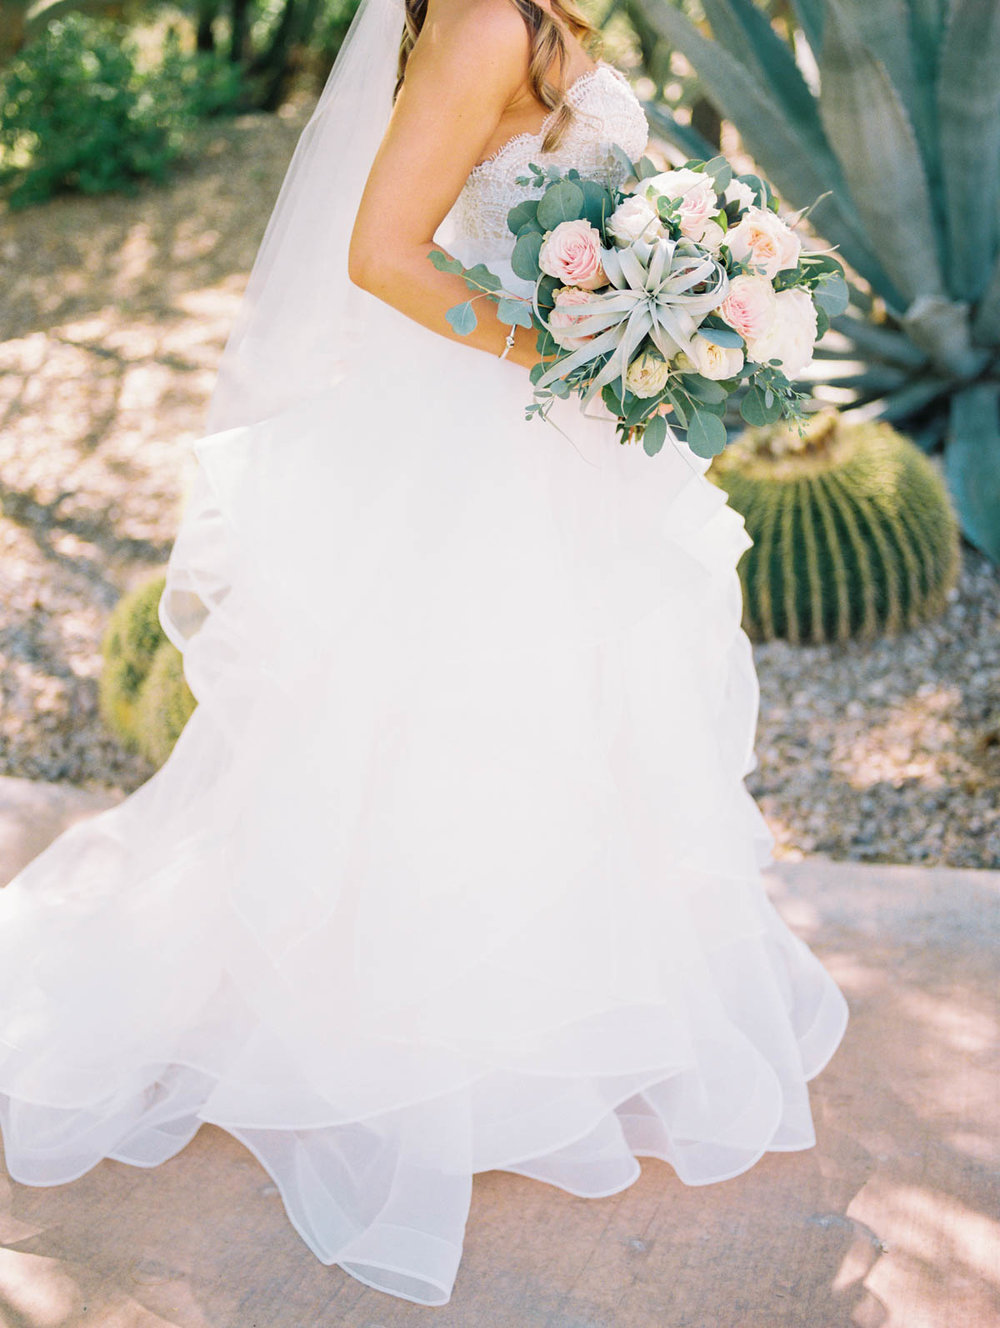 Gorgeous blush bouquet with greenery and air plants captured by Tucson Wedding Photographers Betsy & John